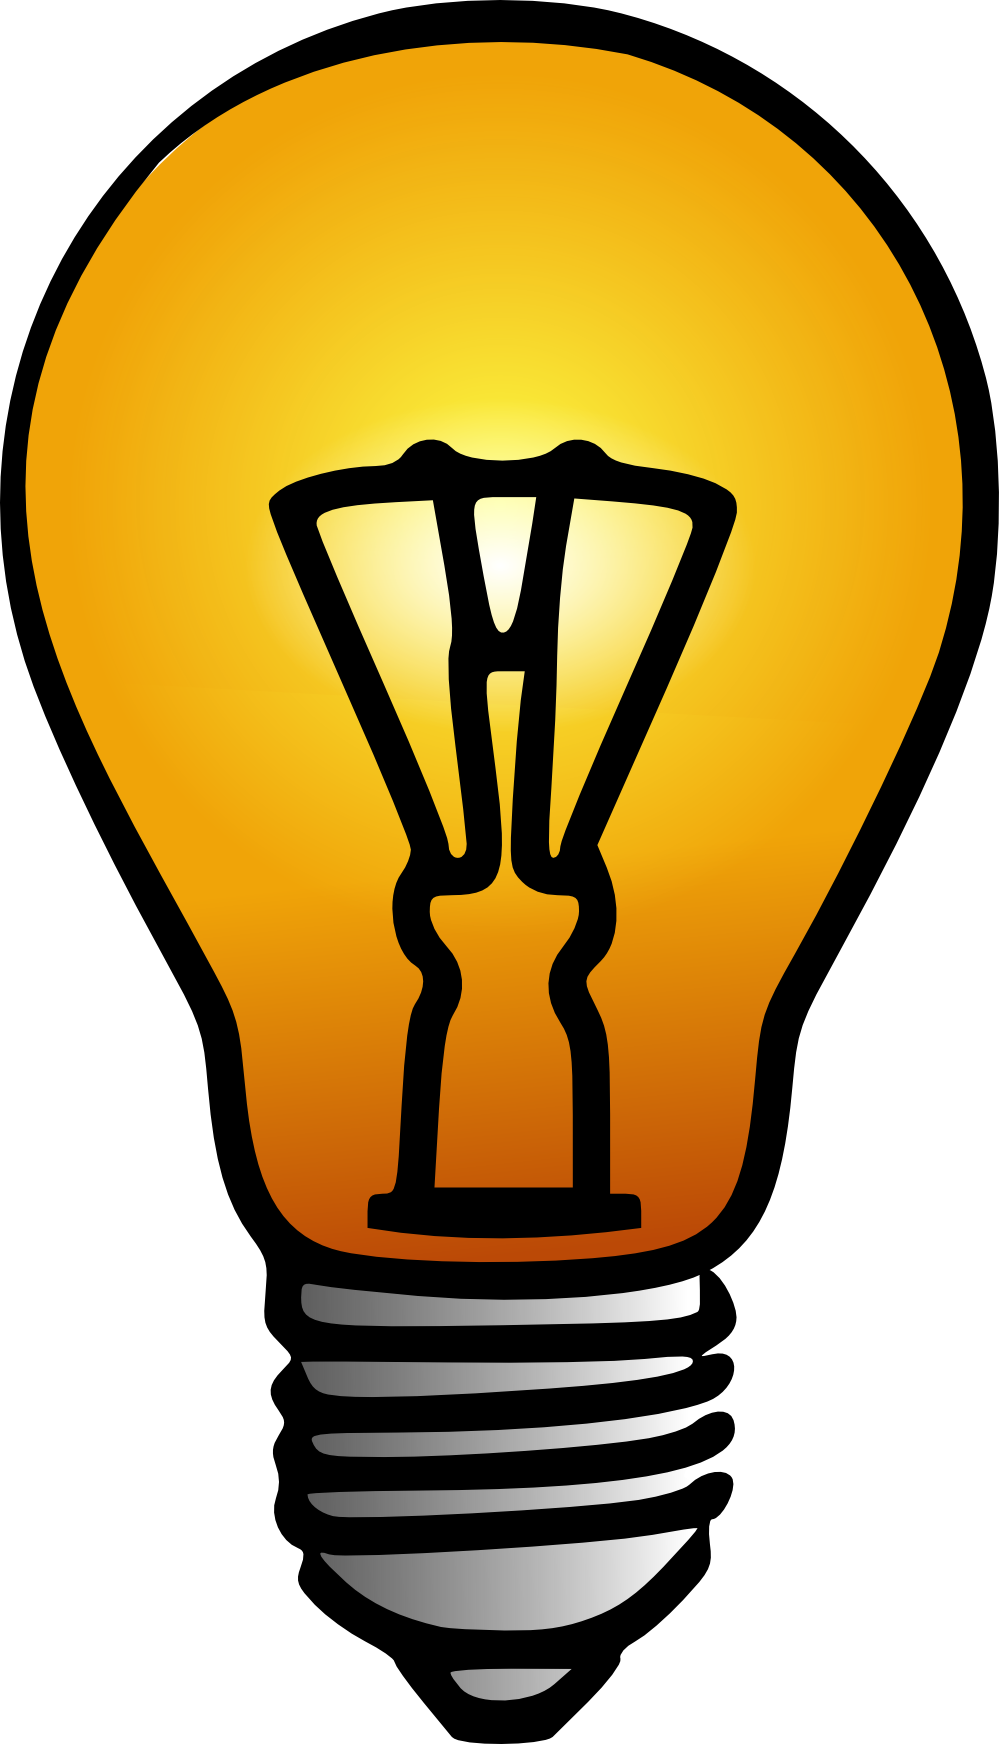 Bulb clipart #16, Download drawings